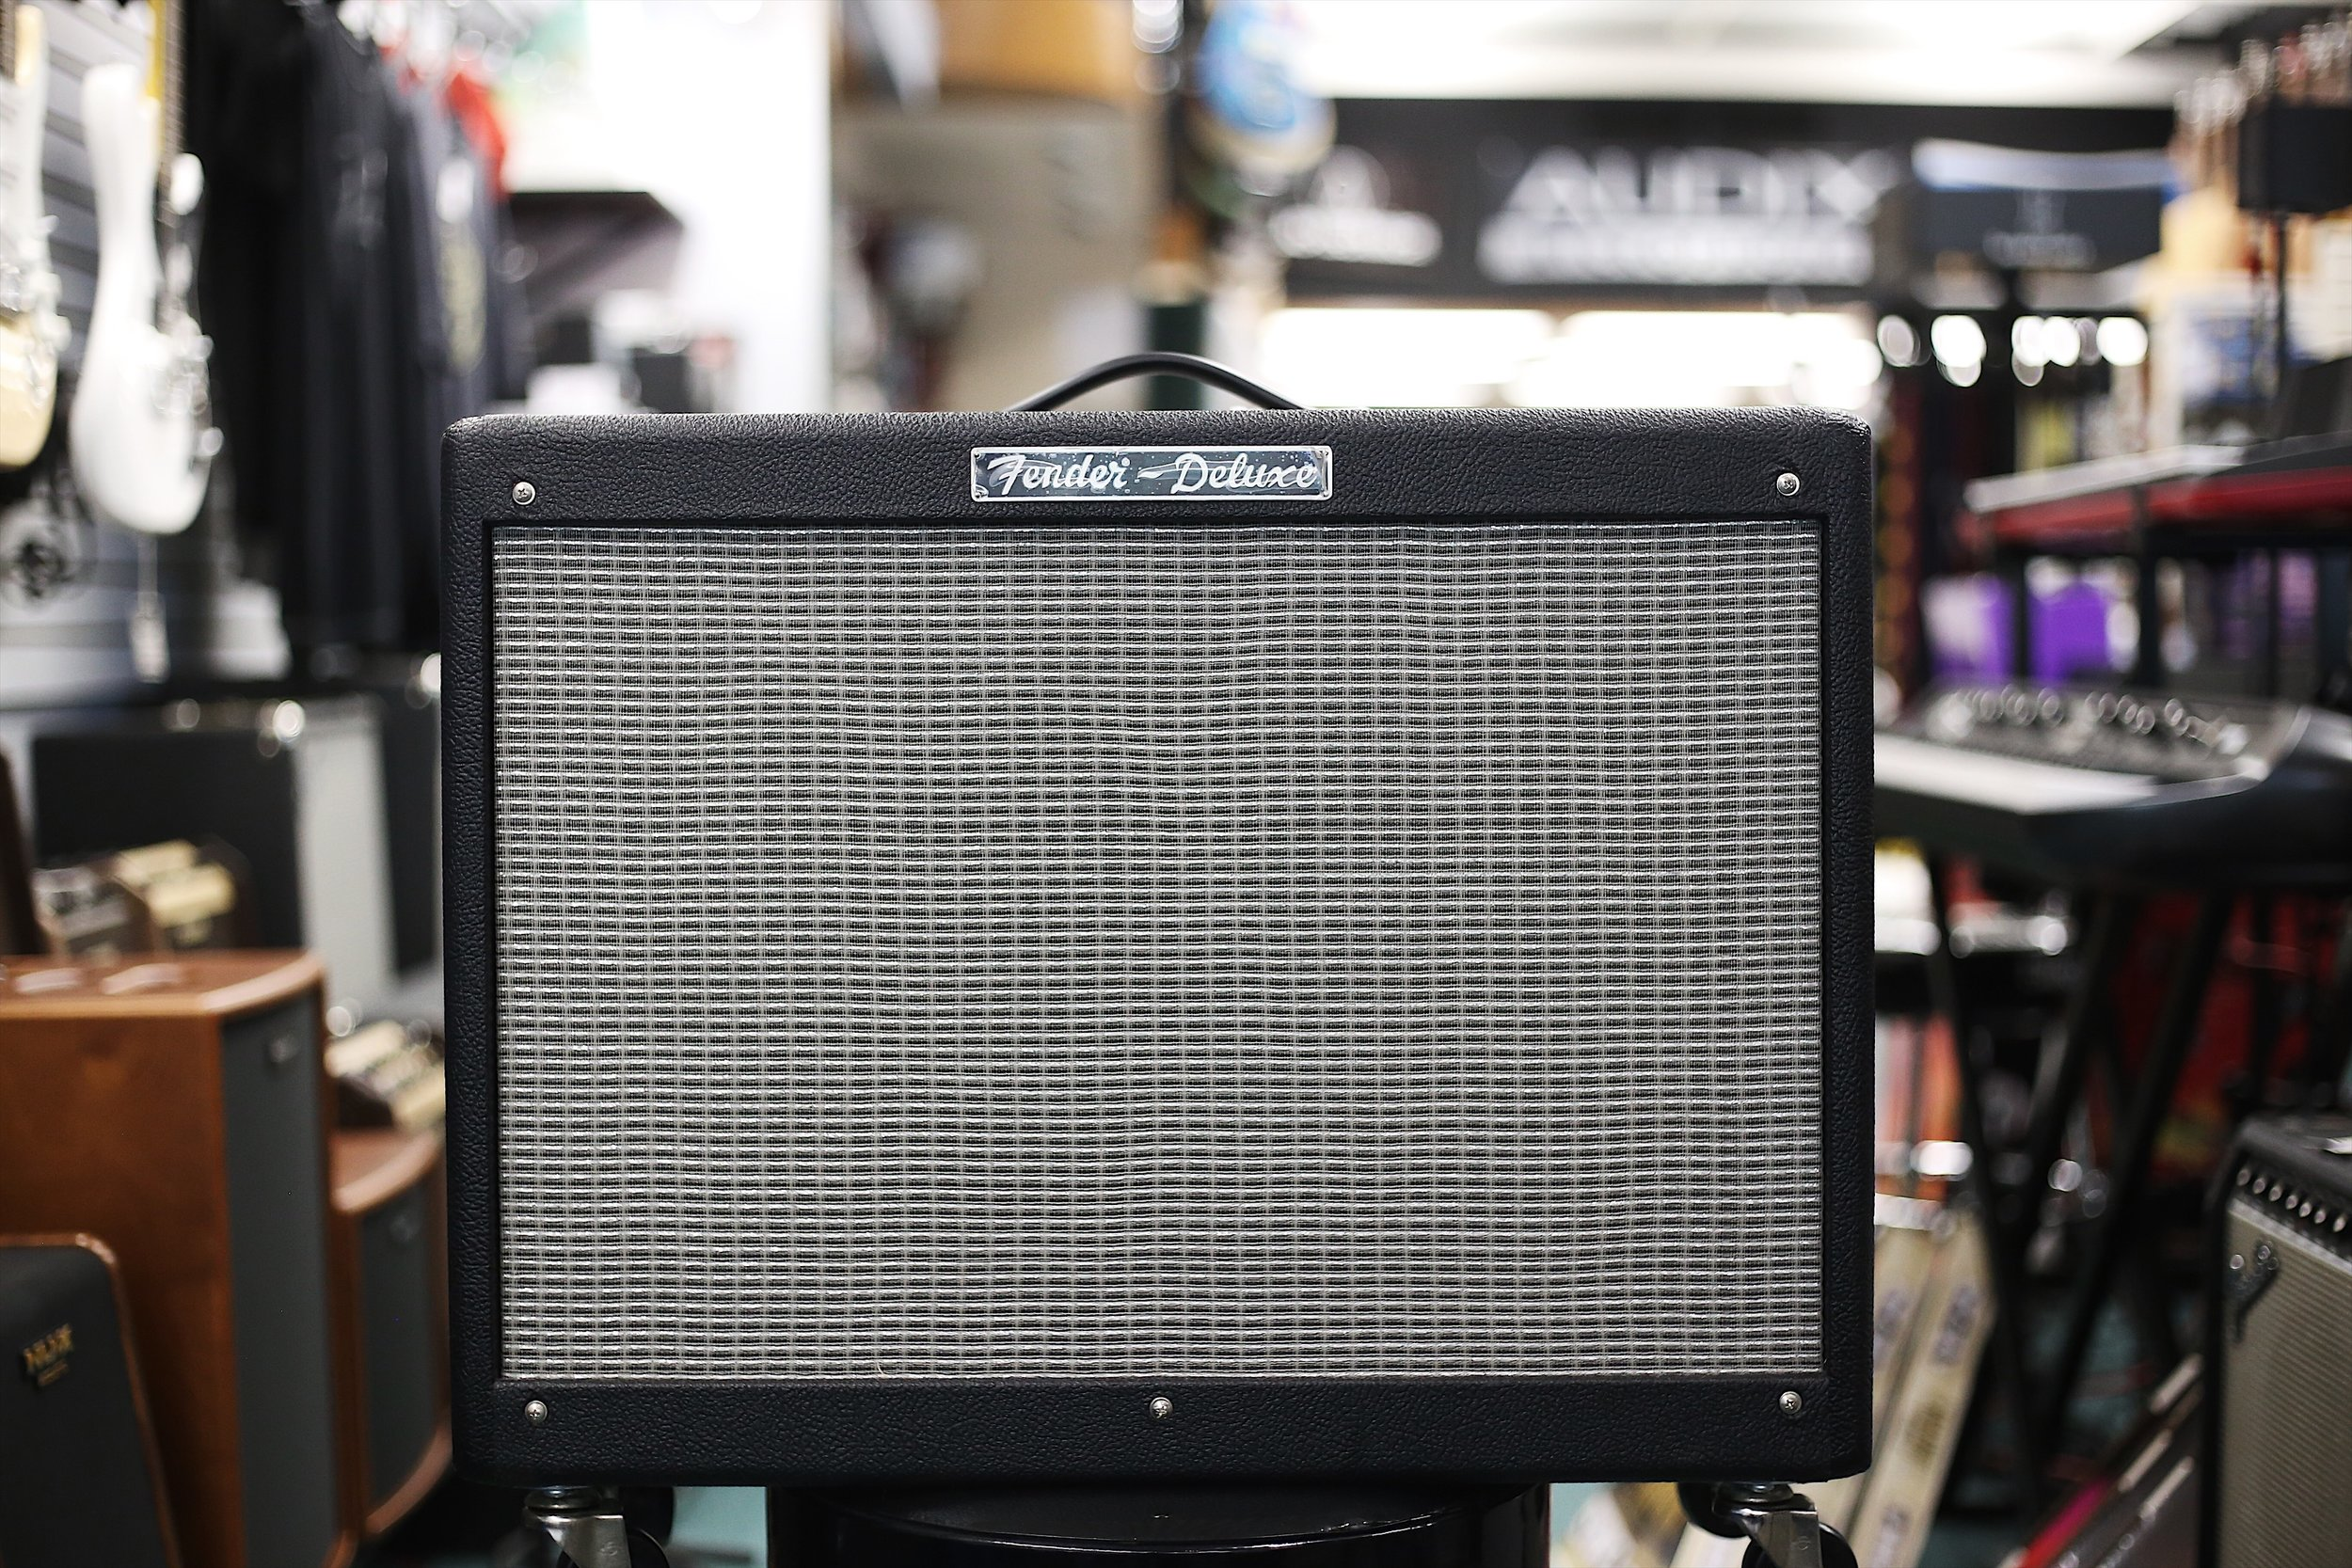 USED - Fender Hot Rod Deluxe 112 Cab - $300